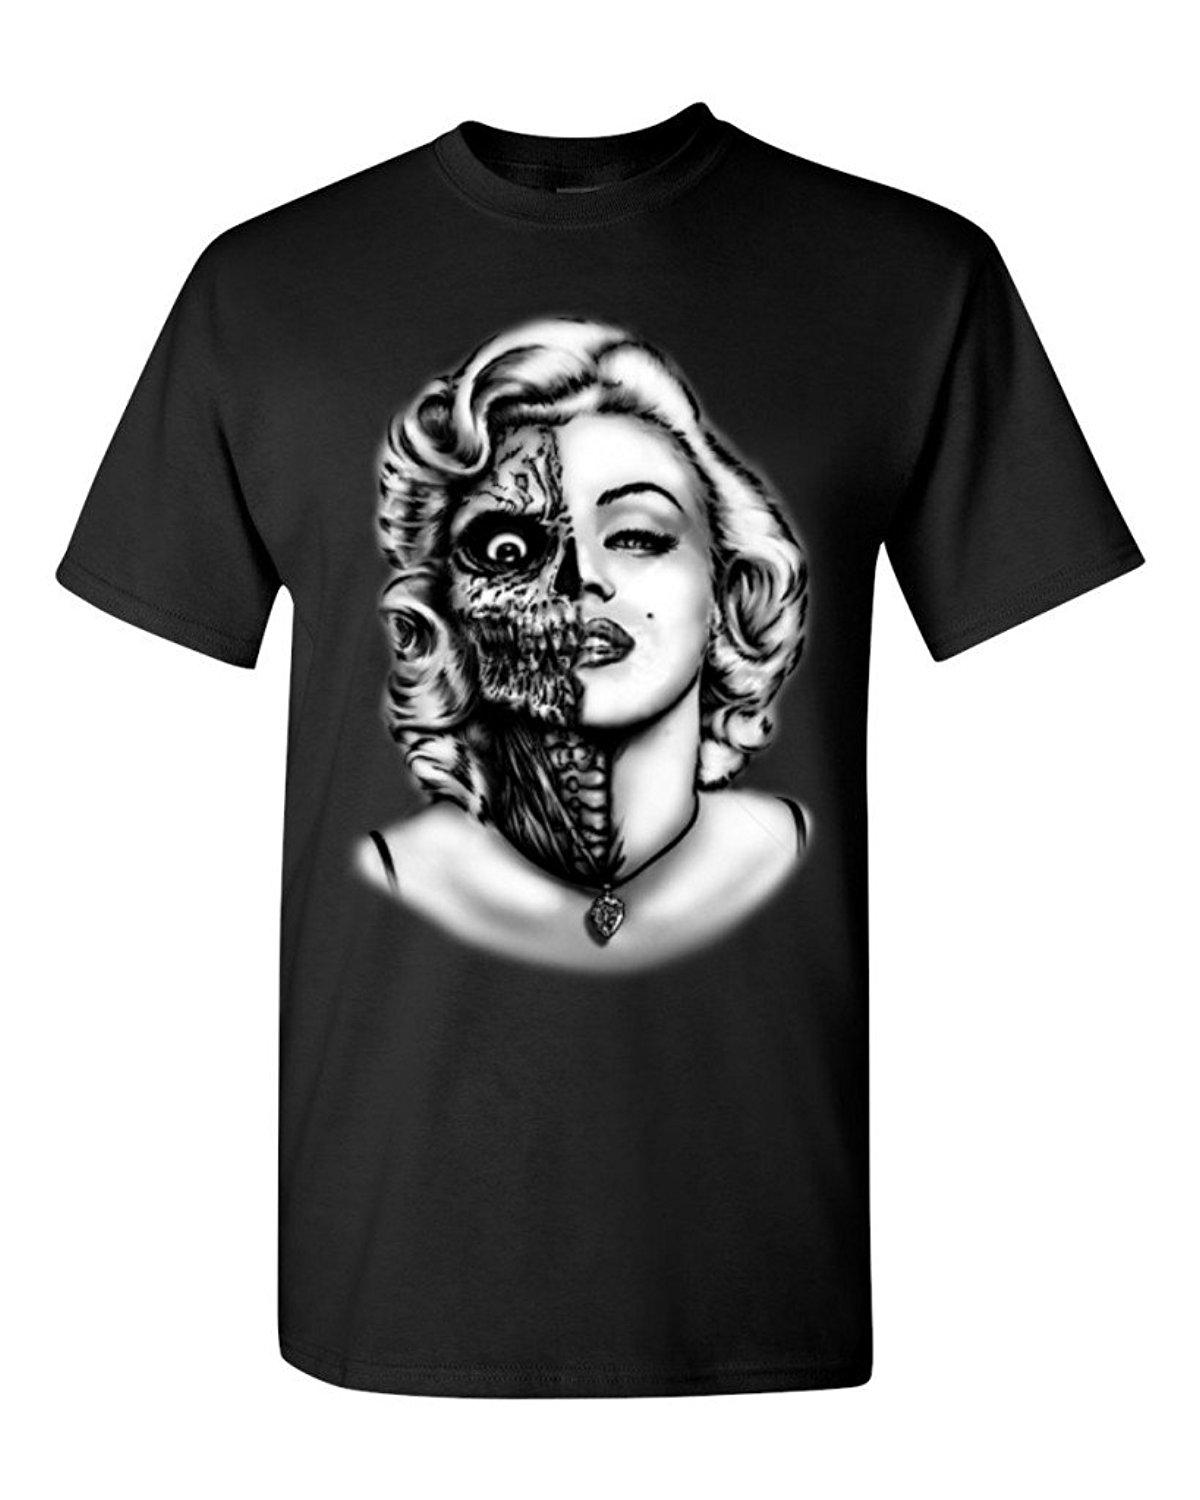 717bf01b Interesting Short Sleeve Half Zombie Face T Shirt Marilyn Monroe Shirts  Black Style Summer Comfortable 100% Cotton Funny T Shirts For Men Make T  Shirts From ...